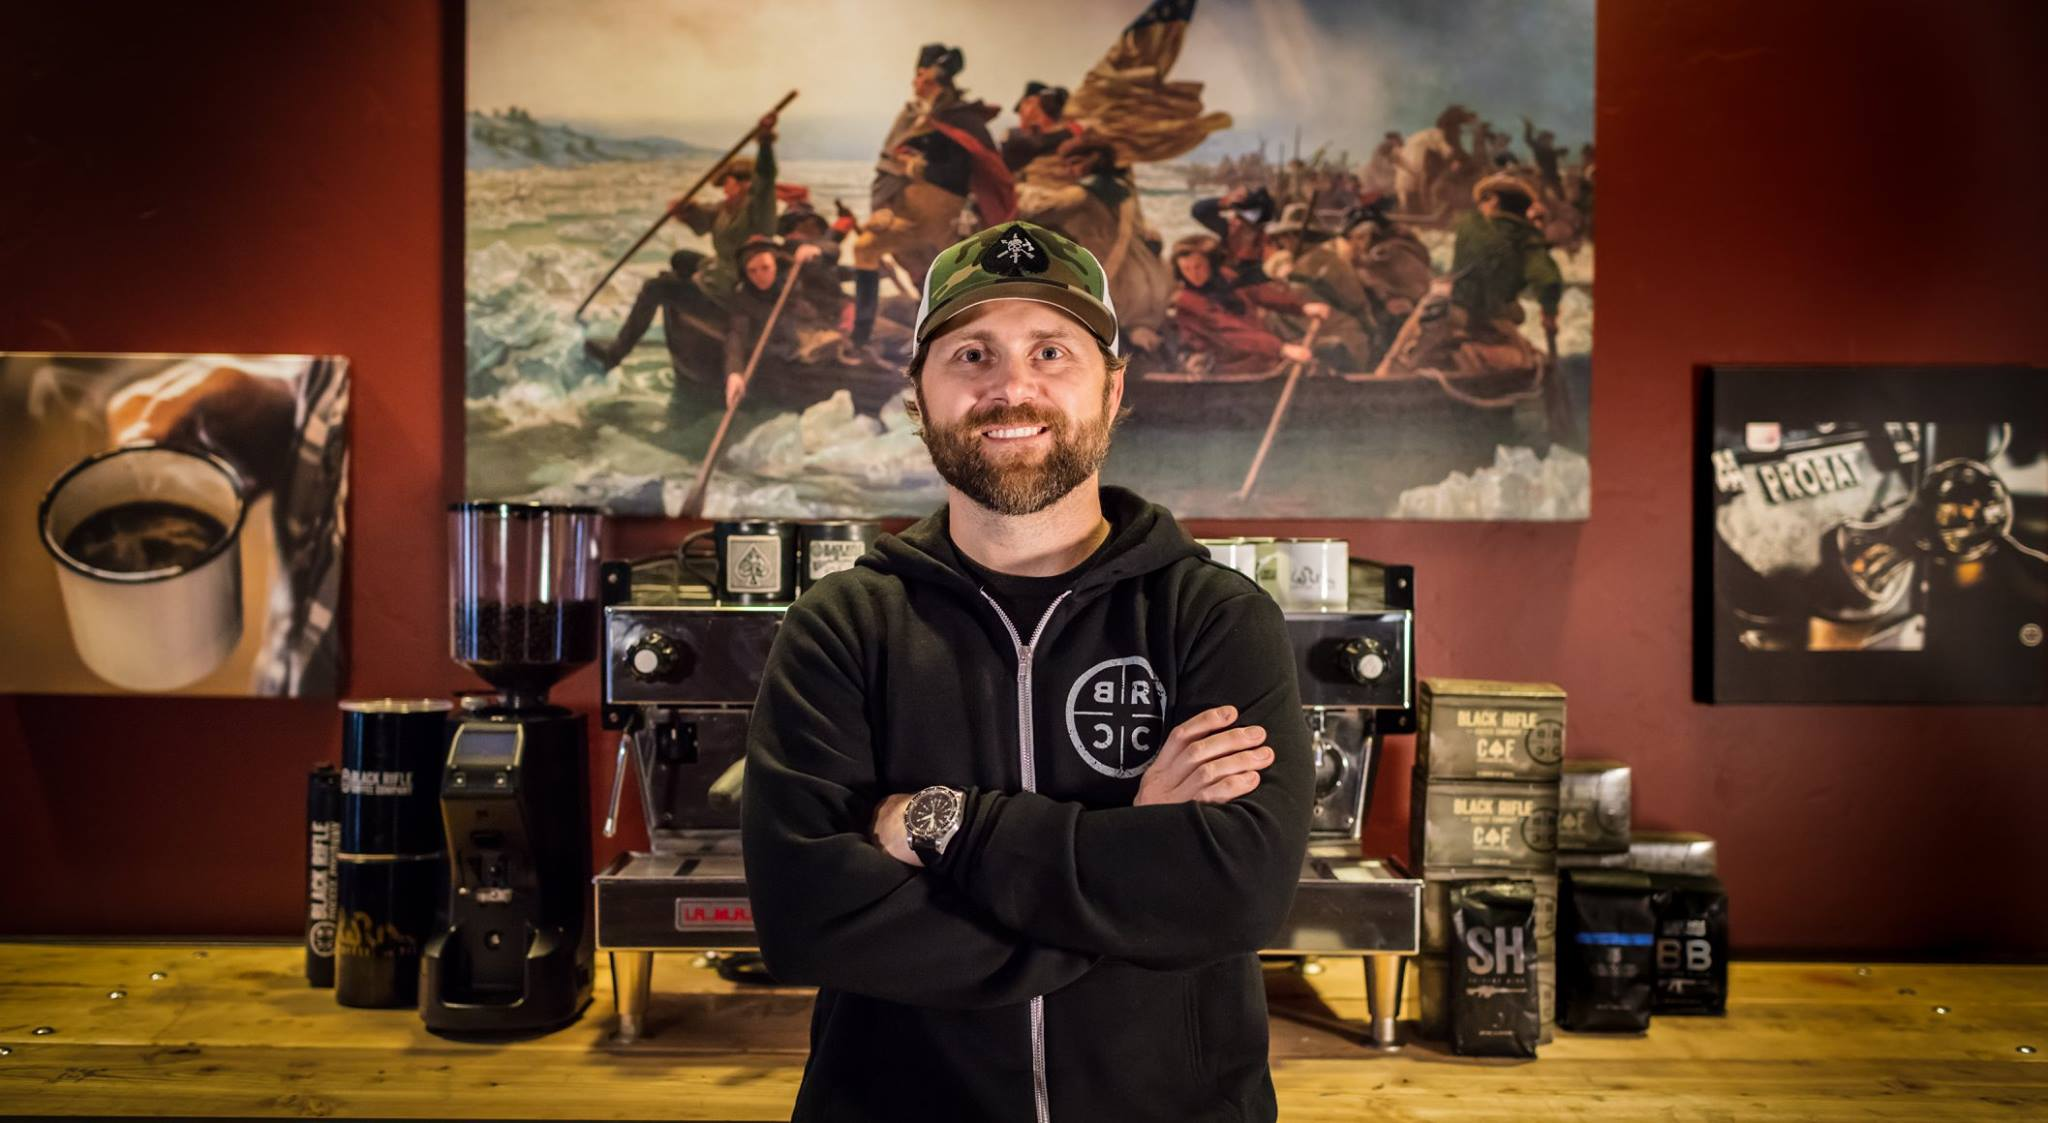 Evan Hafer – Founder/CEO, Black Rifle Coffee Company